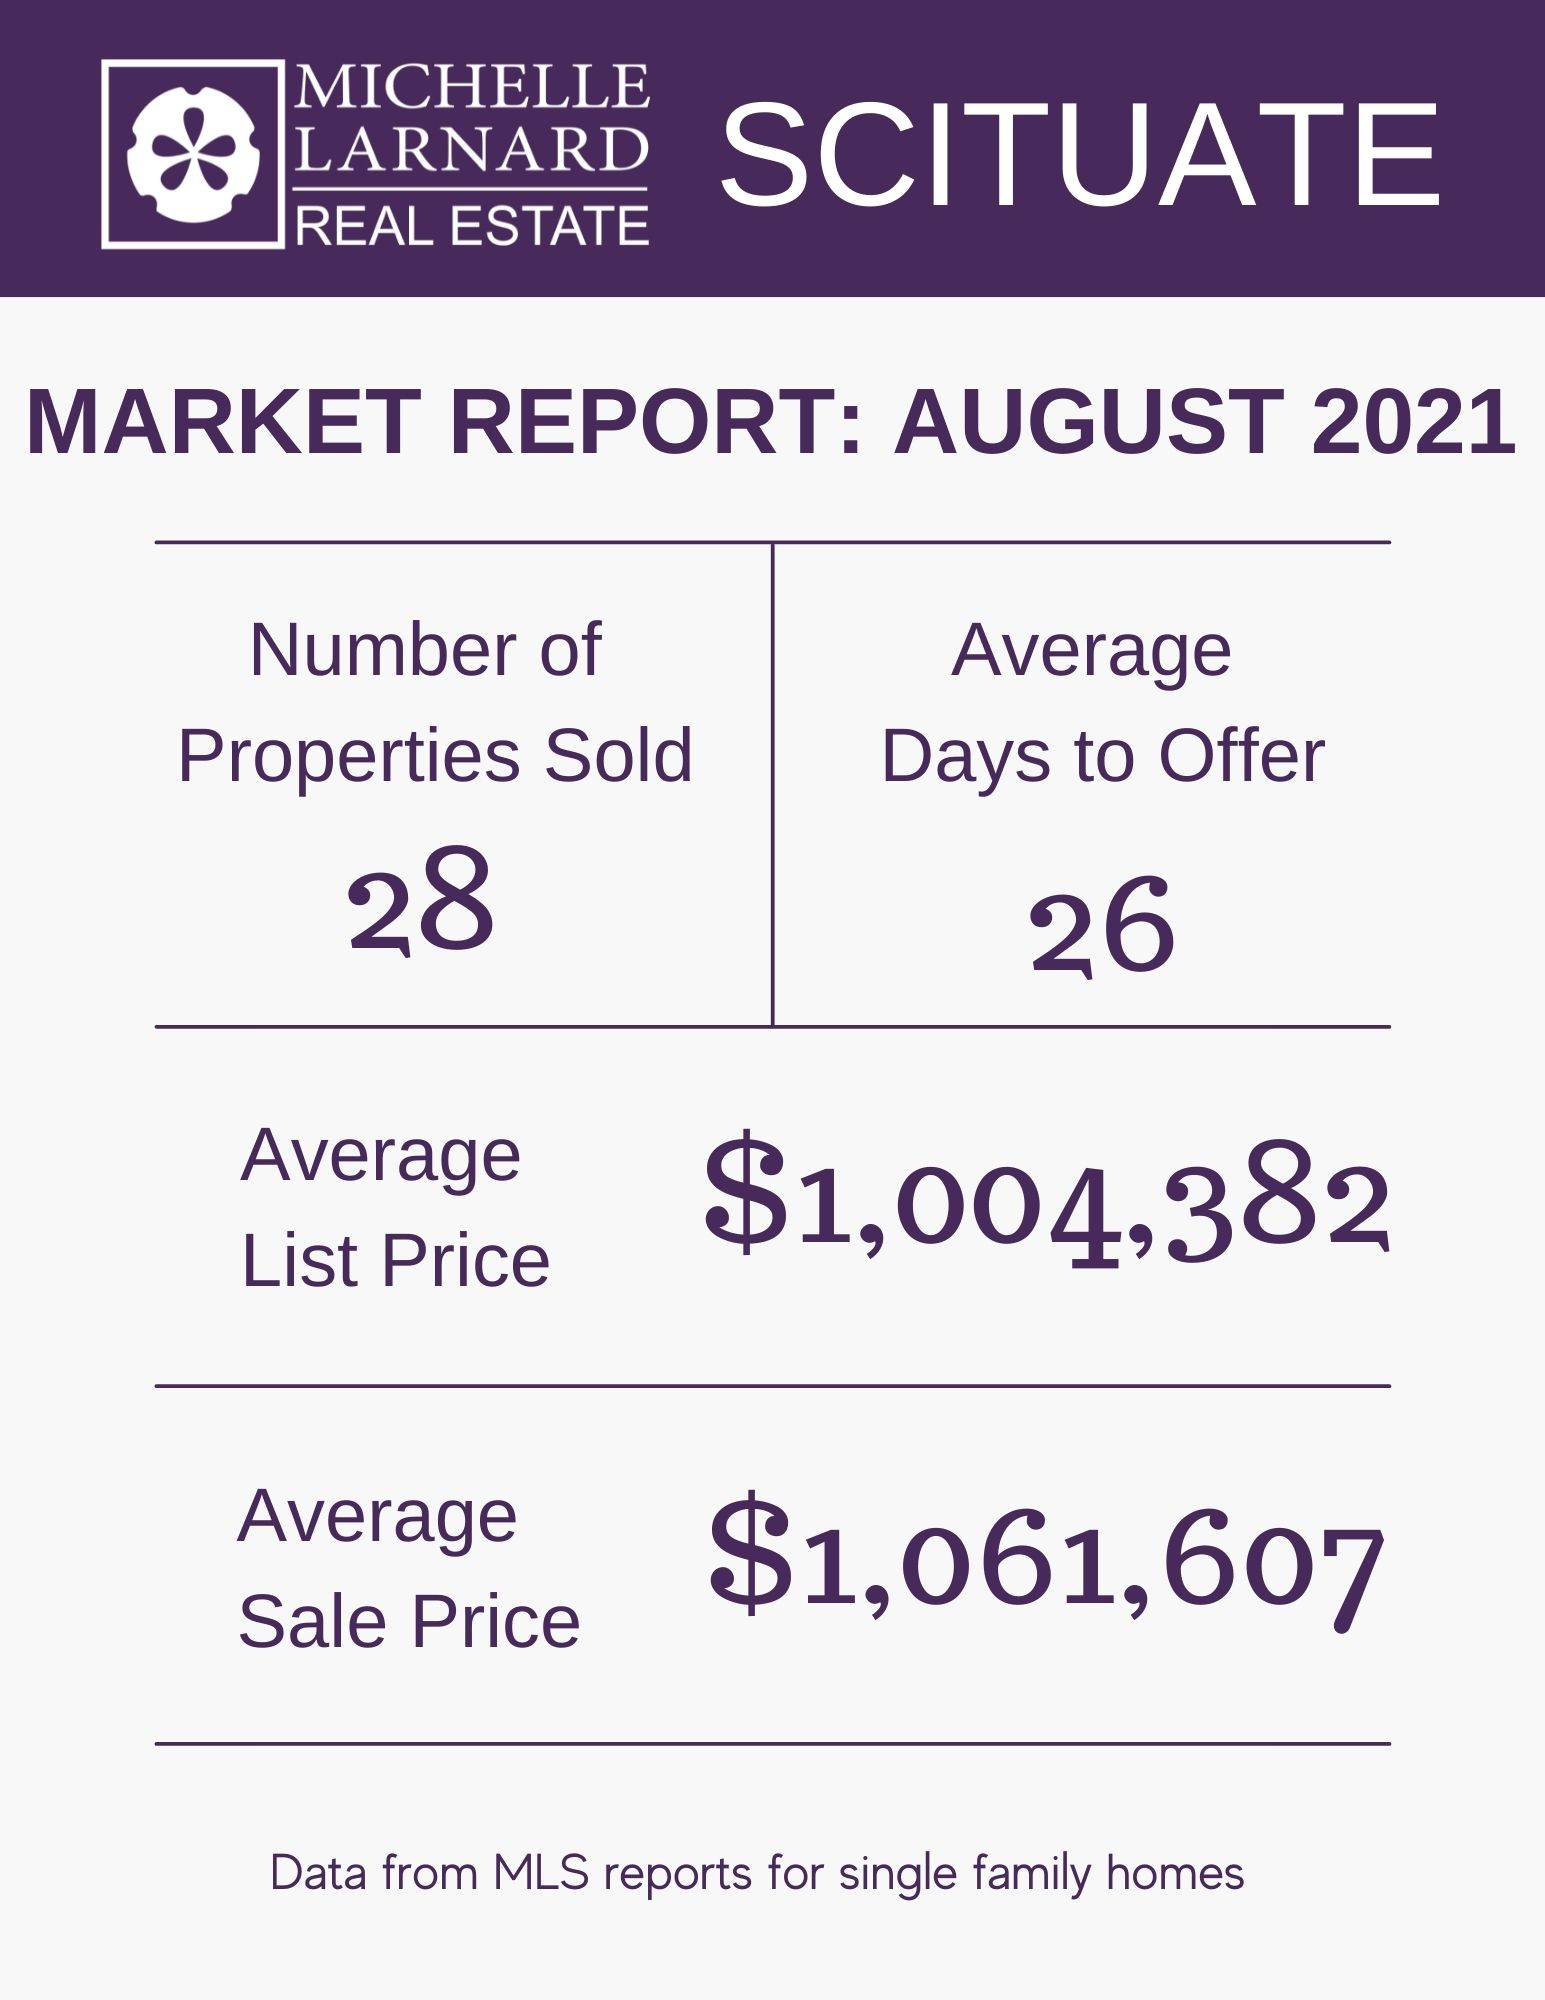 Scituate Real Estate Market Report